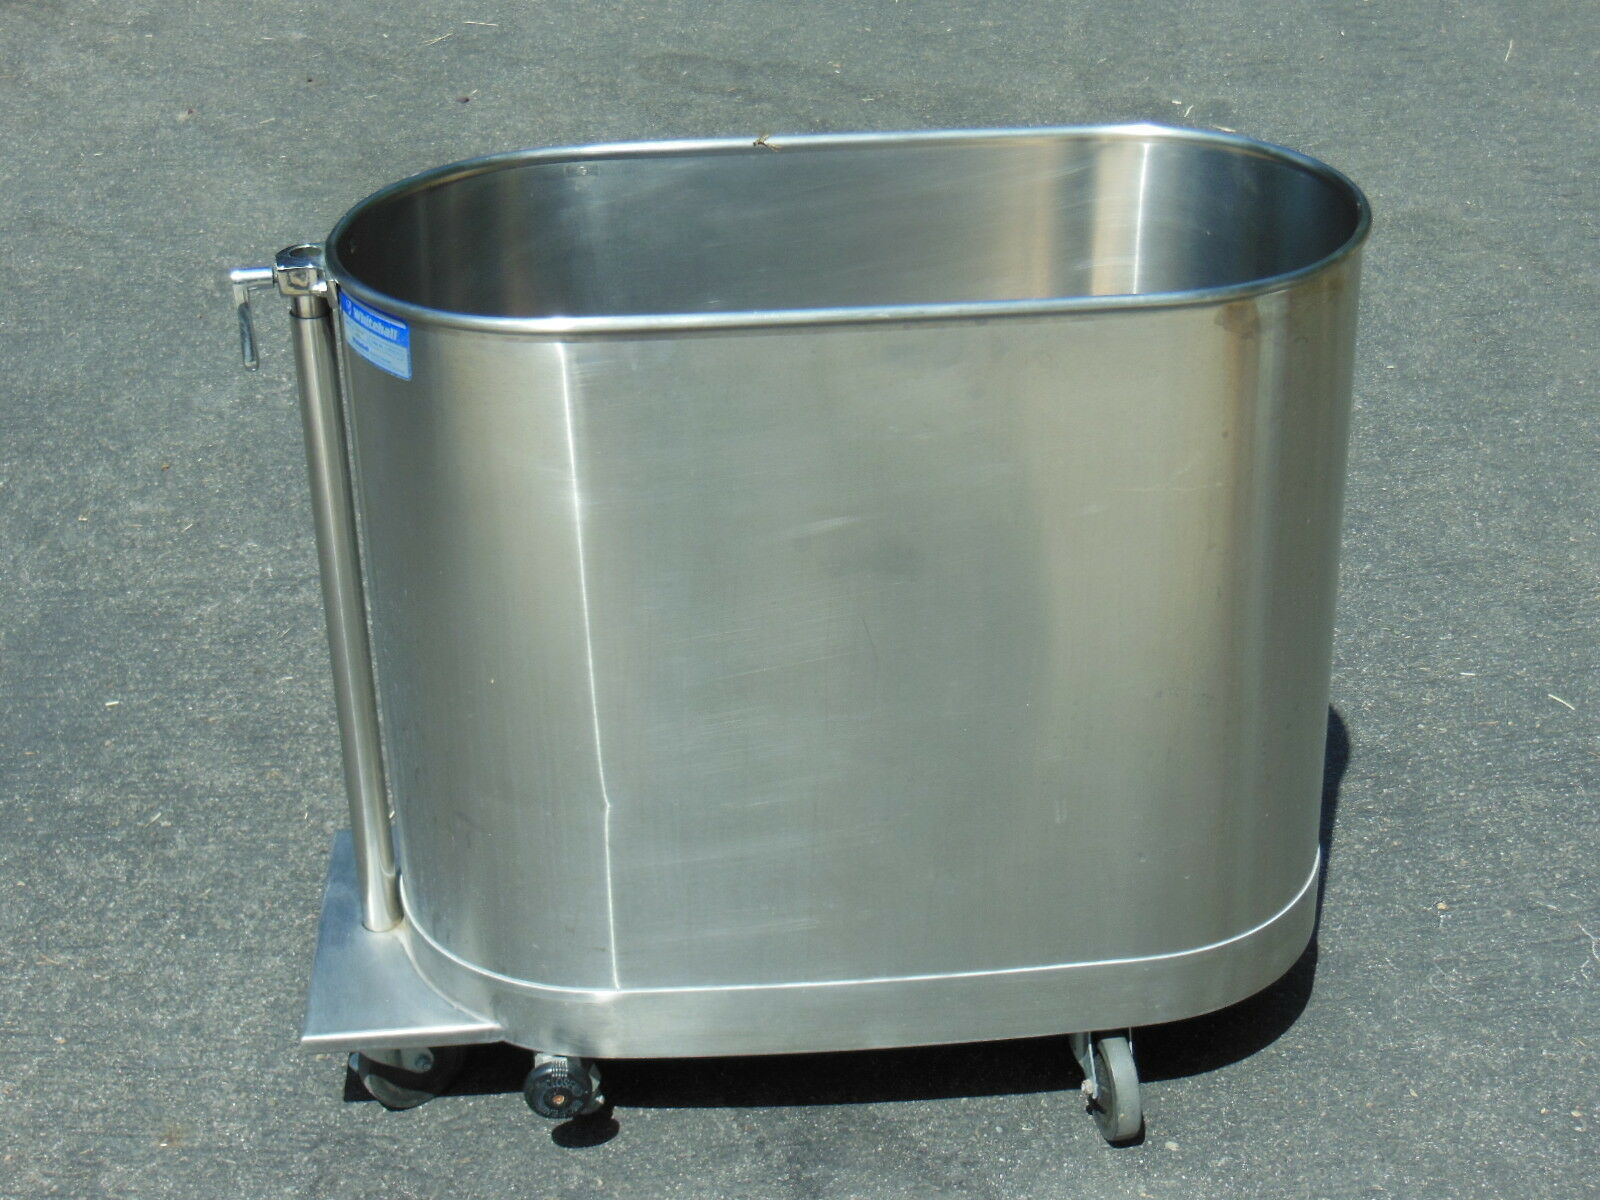 WHITEHALL 45 GALLON Hydrotherapy MOBILE WHIRLPOOL TUB - $764.50 ...